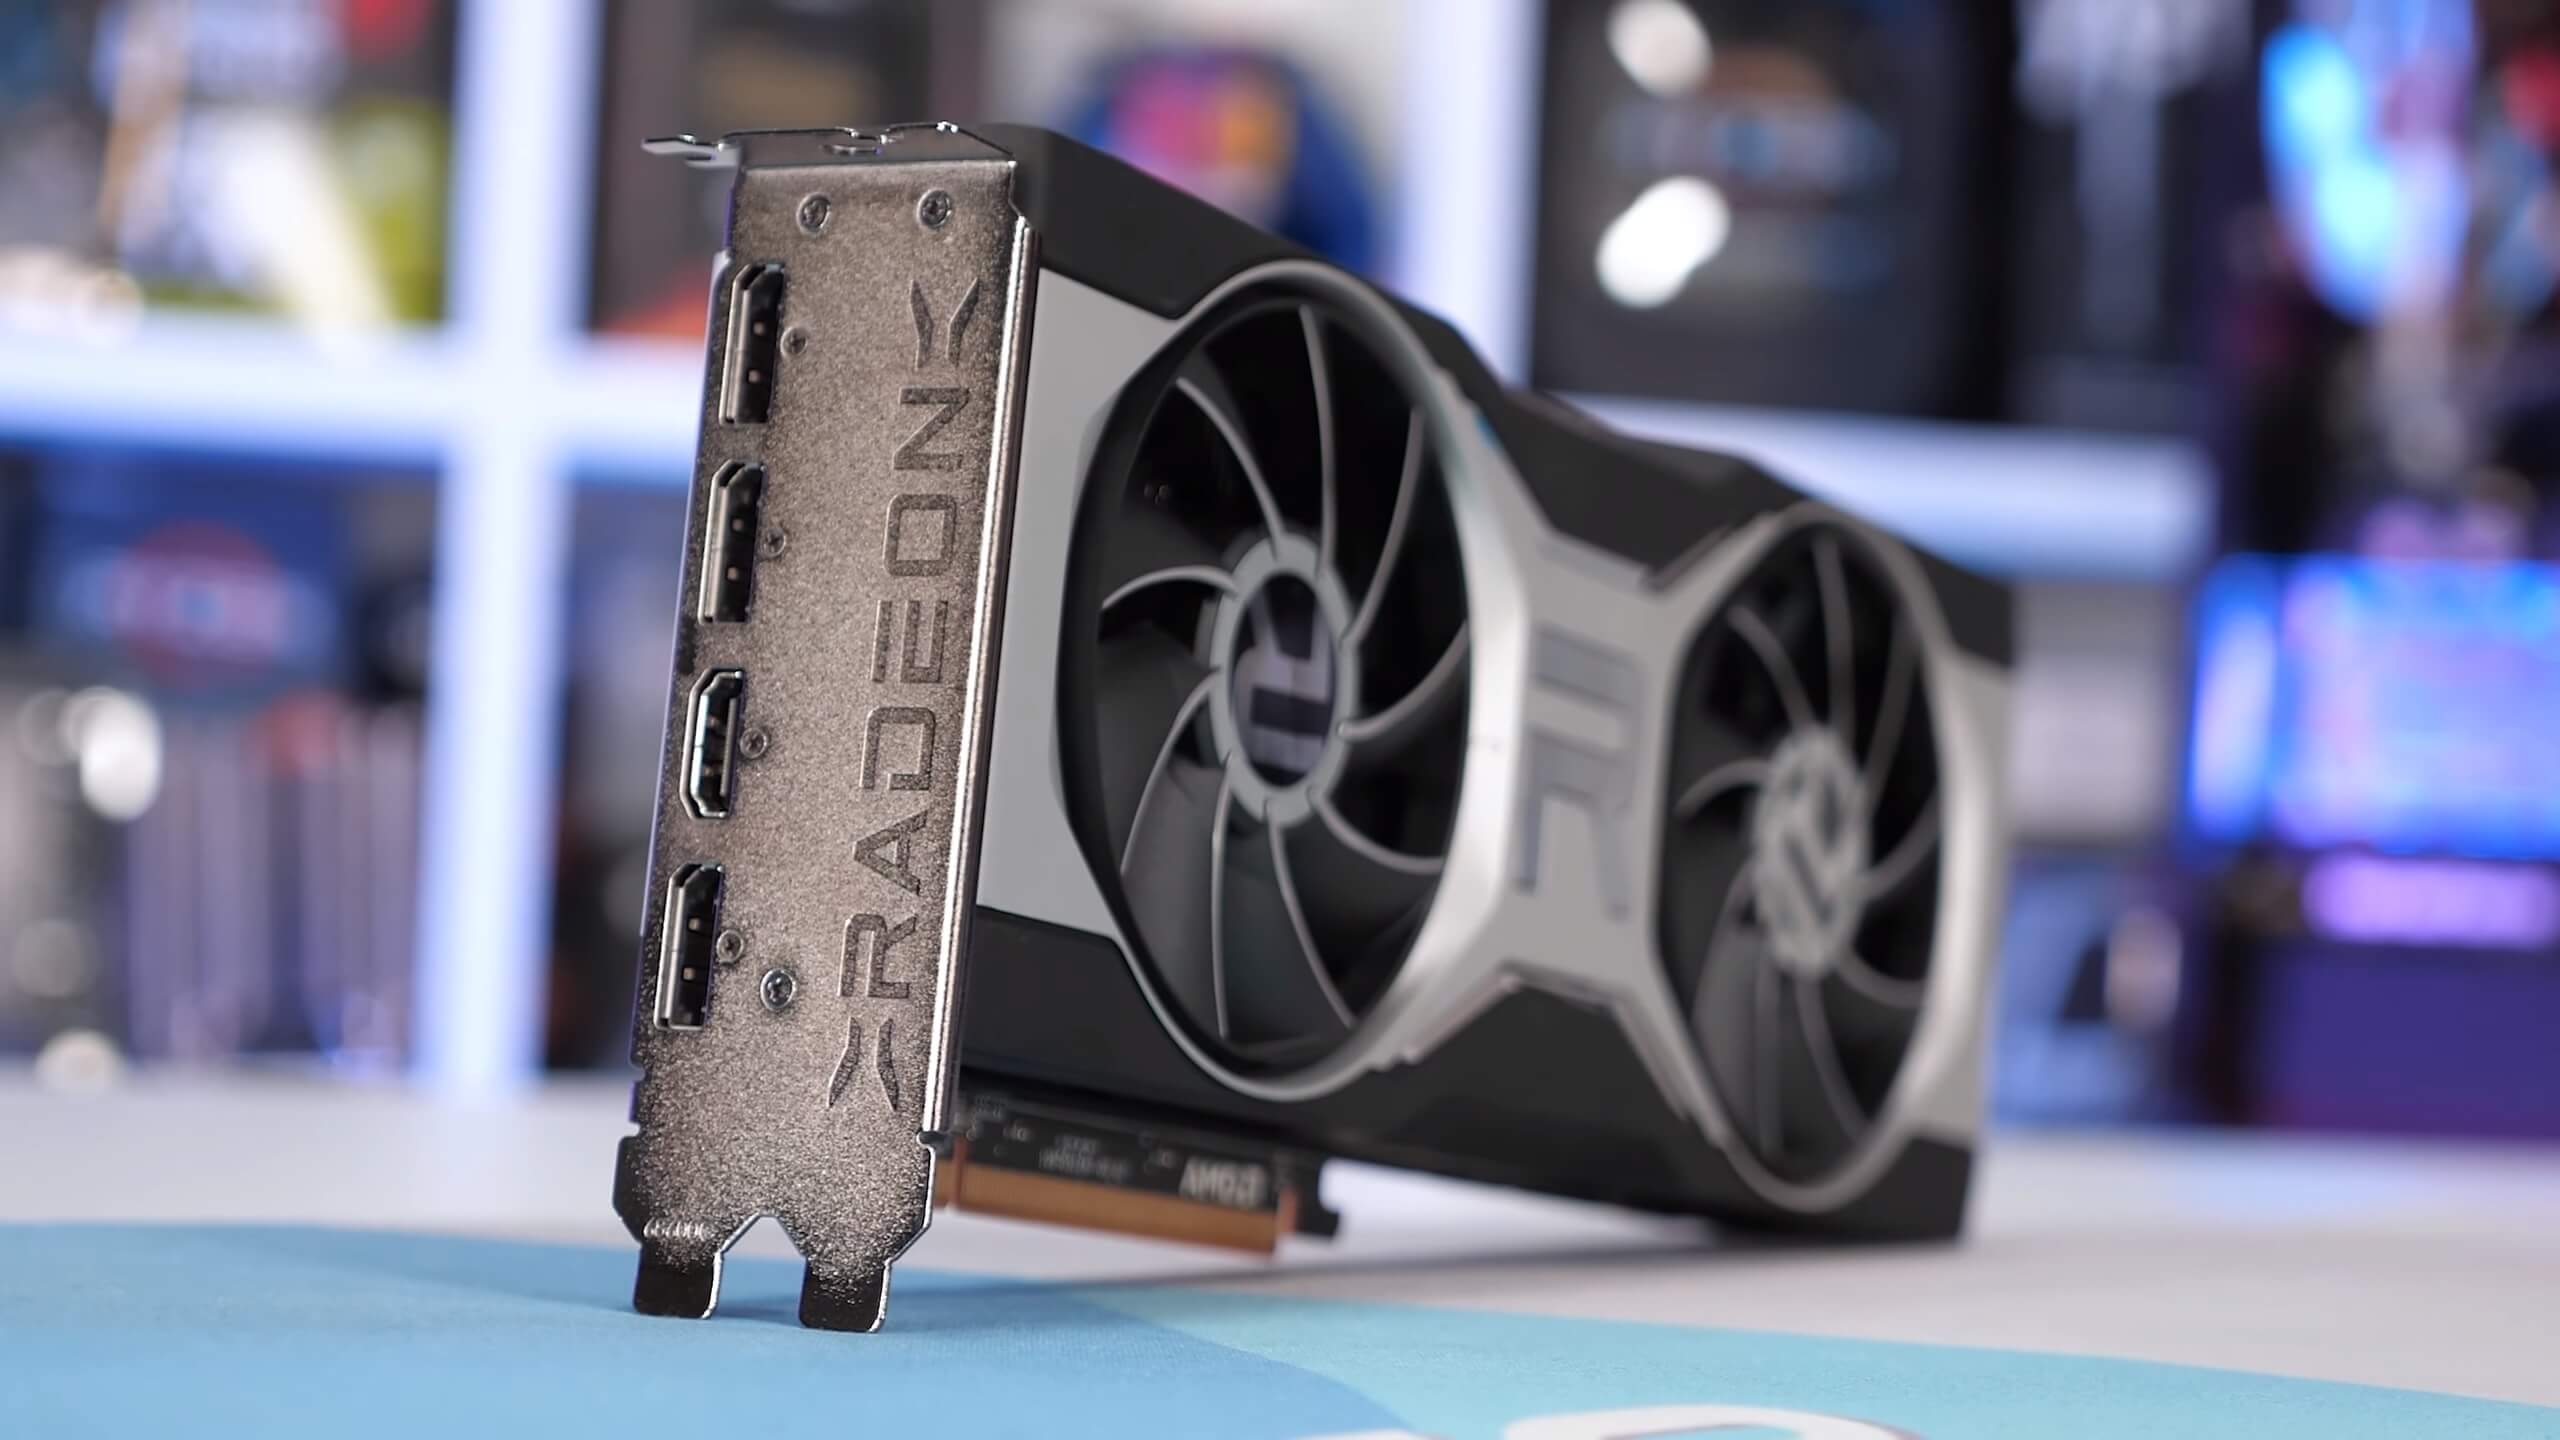 AMD has no plans to limit the mining performance of its cards